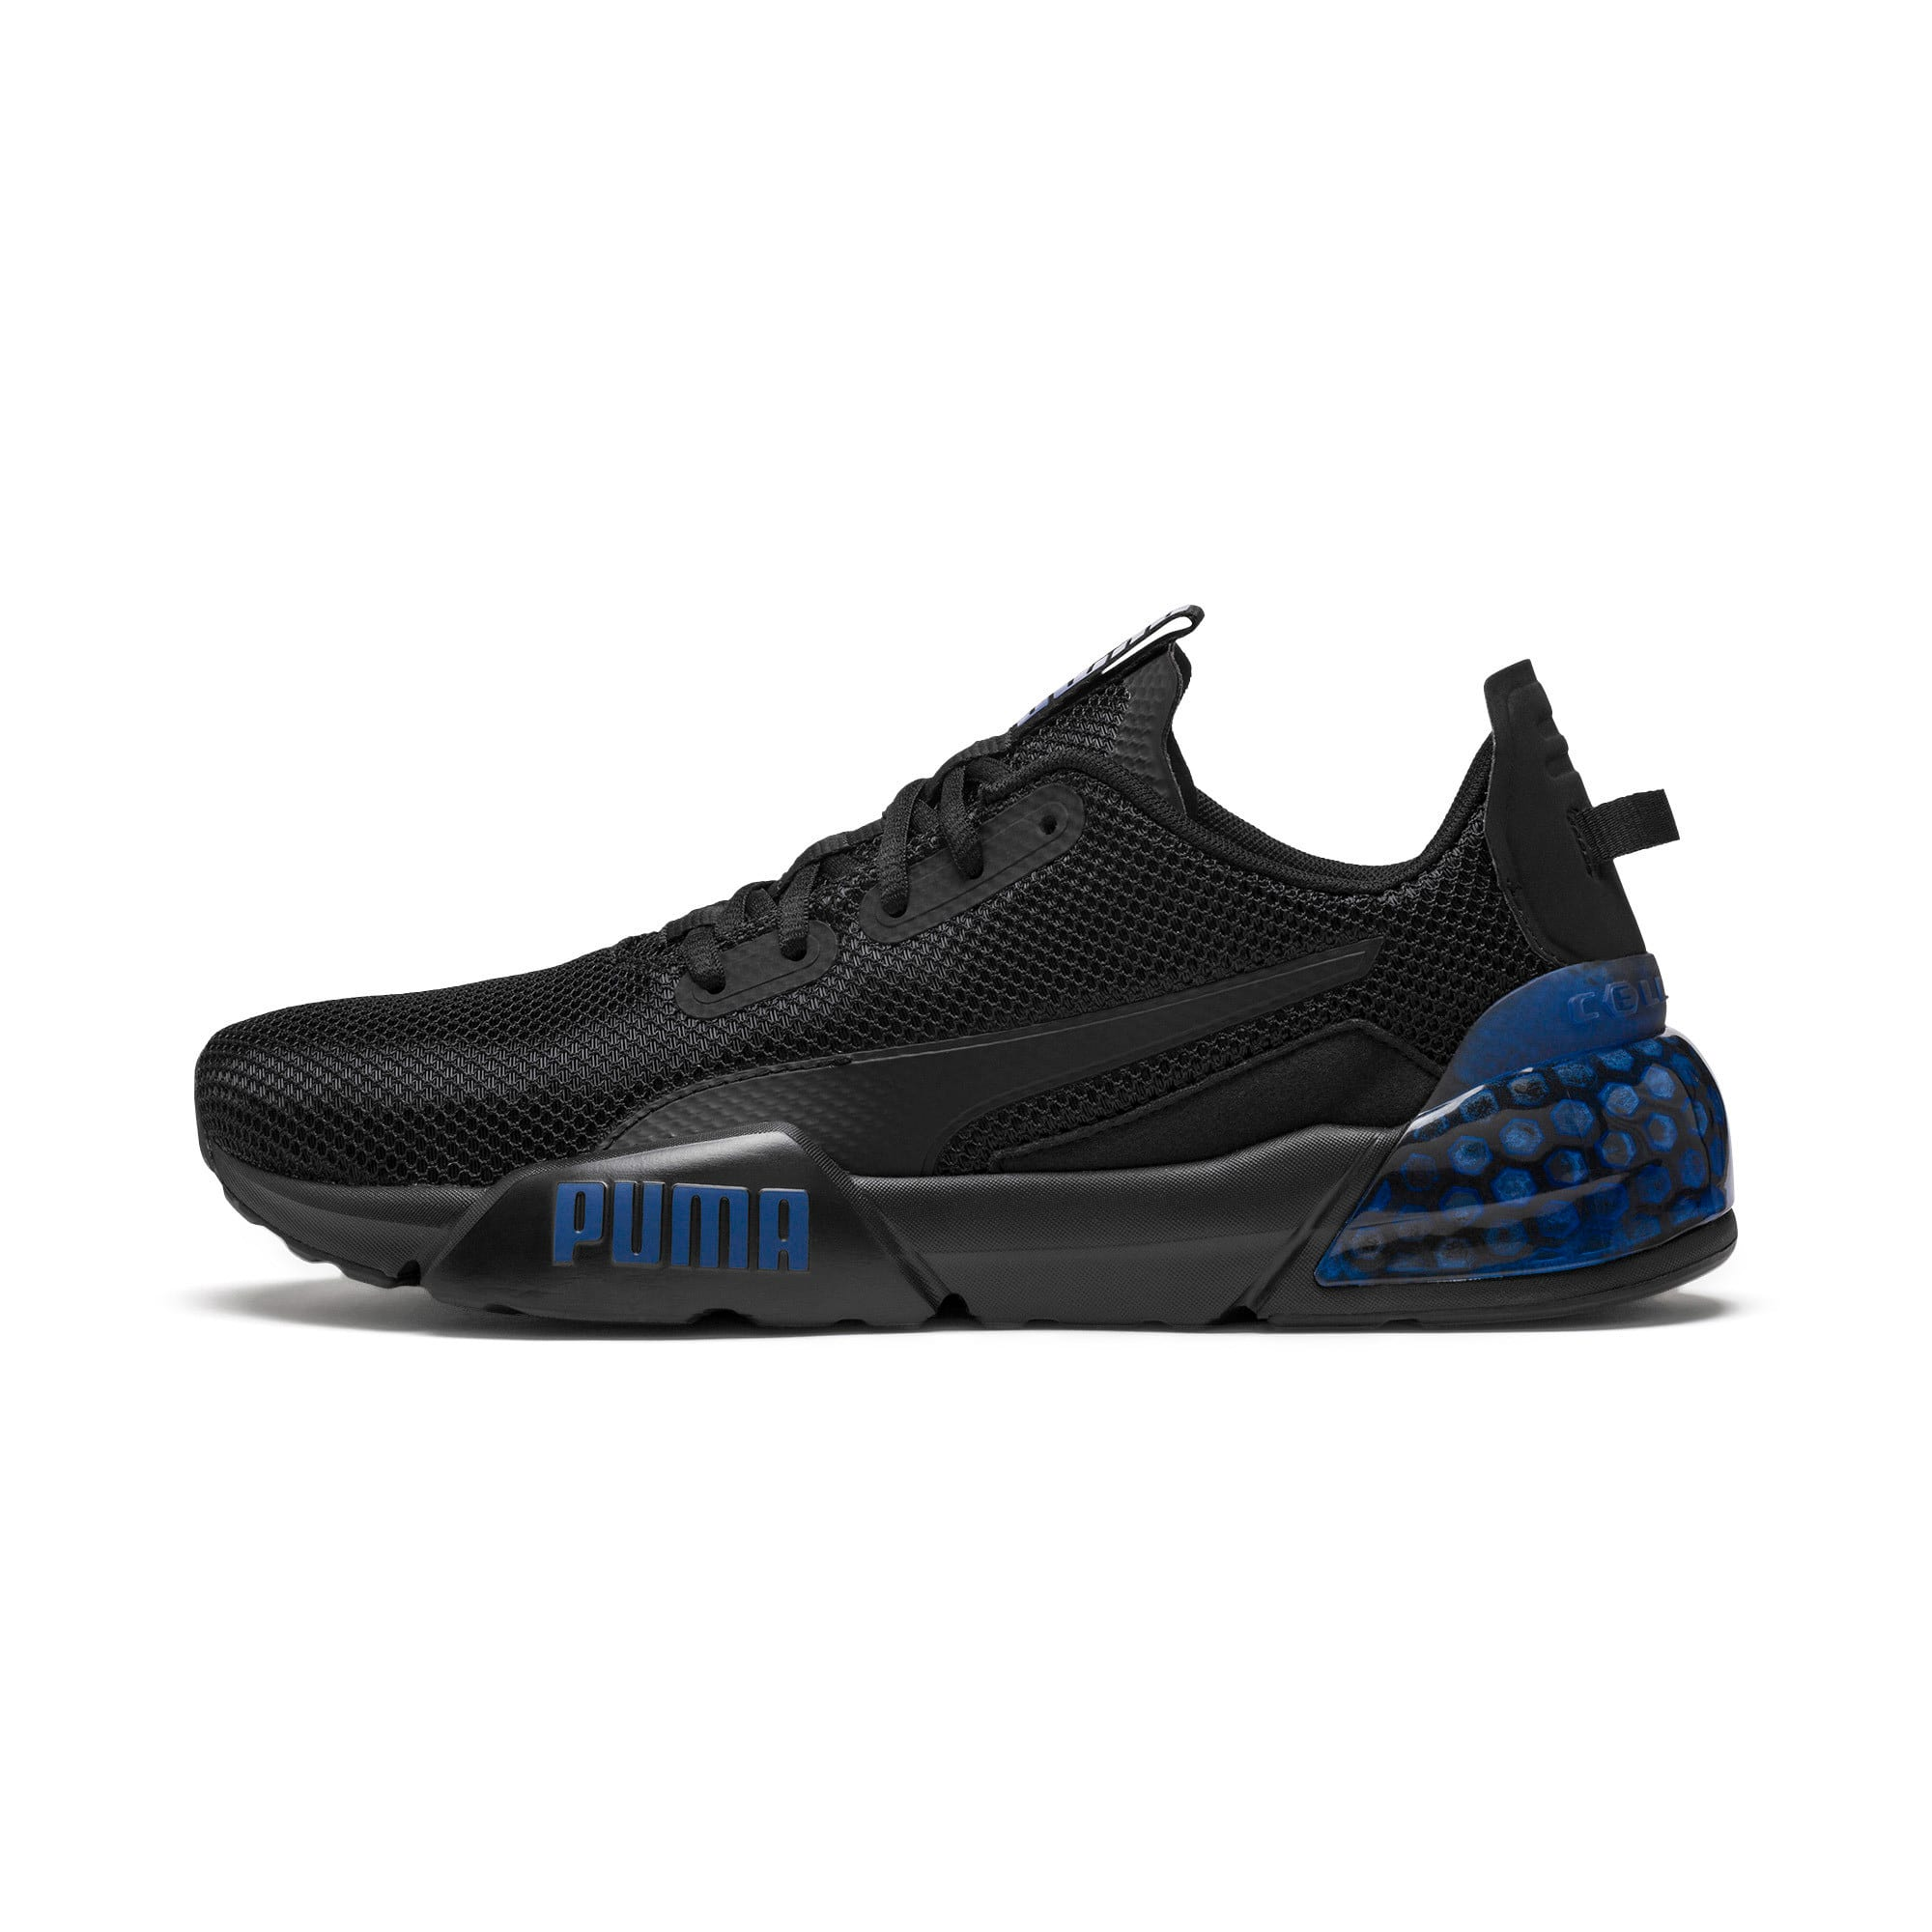 Thumbnail 1 of CELL Phase Men's Running Trainers, Puma Black-Galaxy Blue, medium